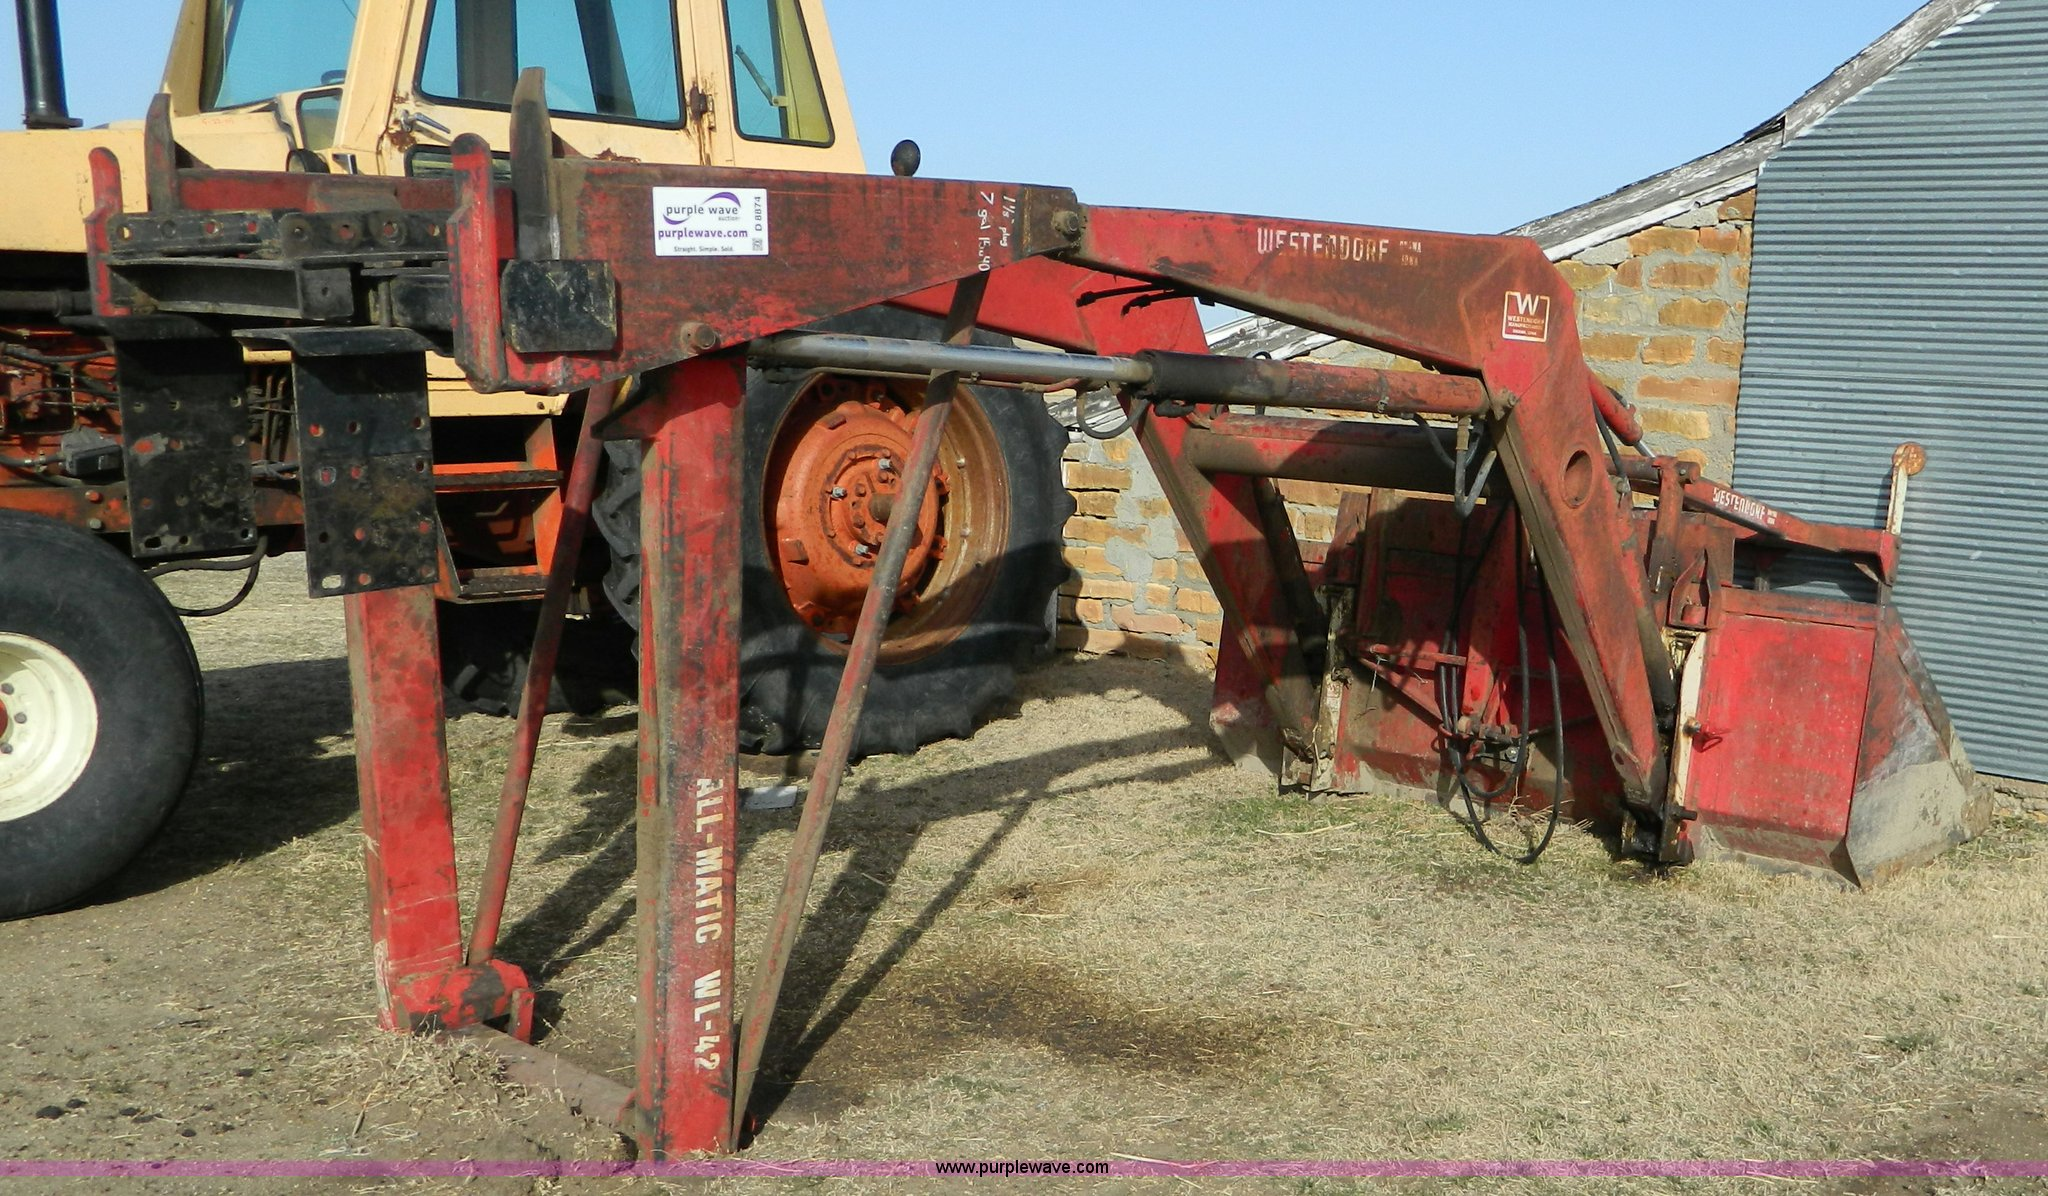 Westendorf All-Matic WL-42 loader | Item D8874 | SOLD! March